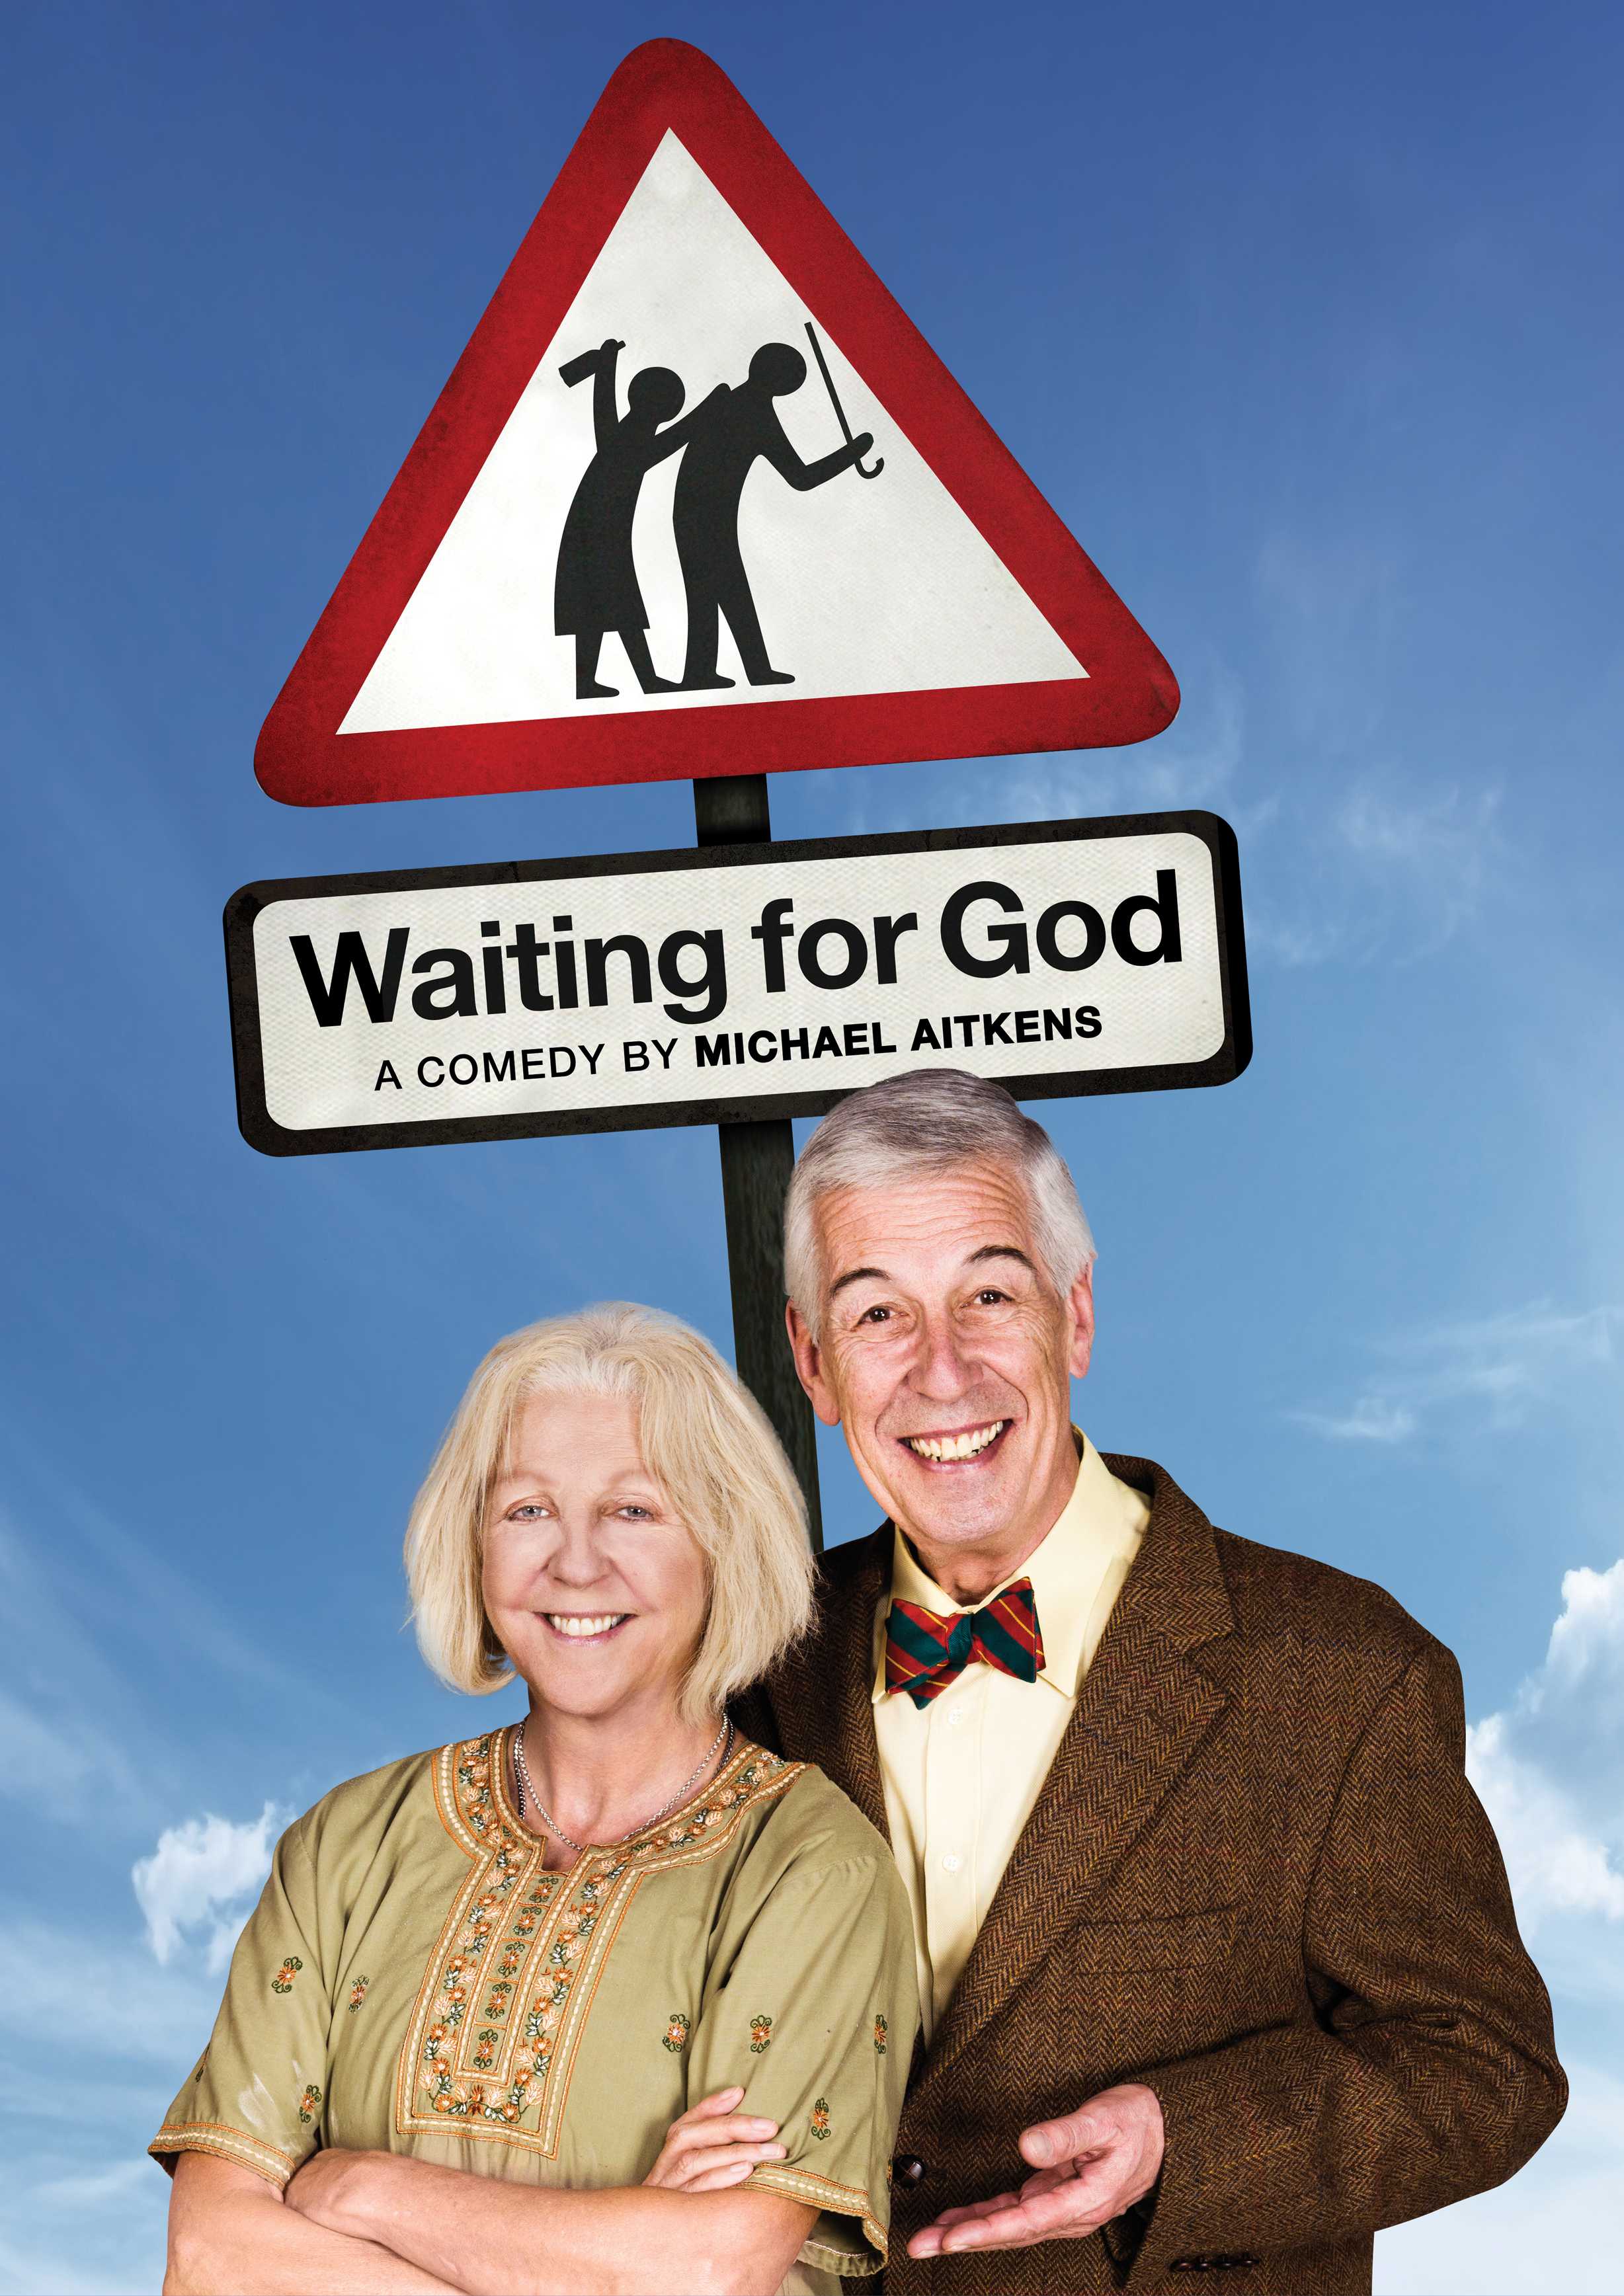 Jeffrey Holland to Star as Tom Ballard in Waiting for God